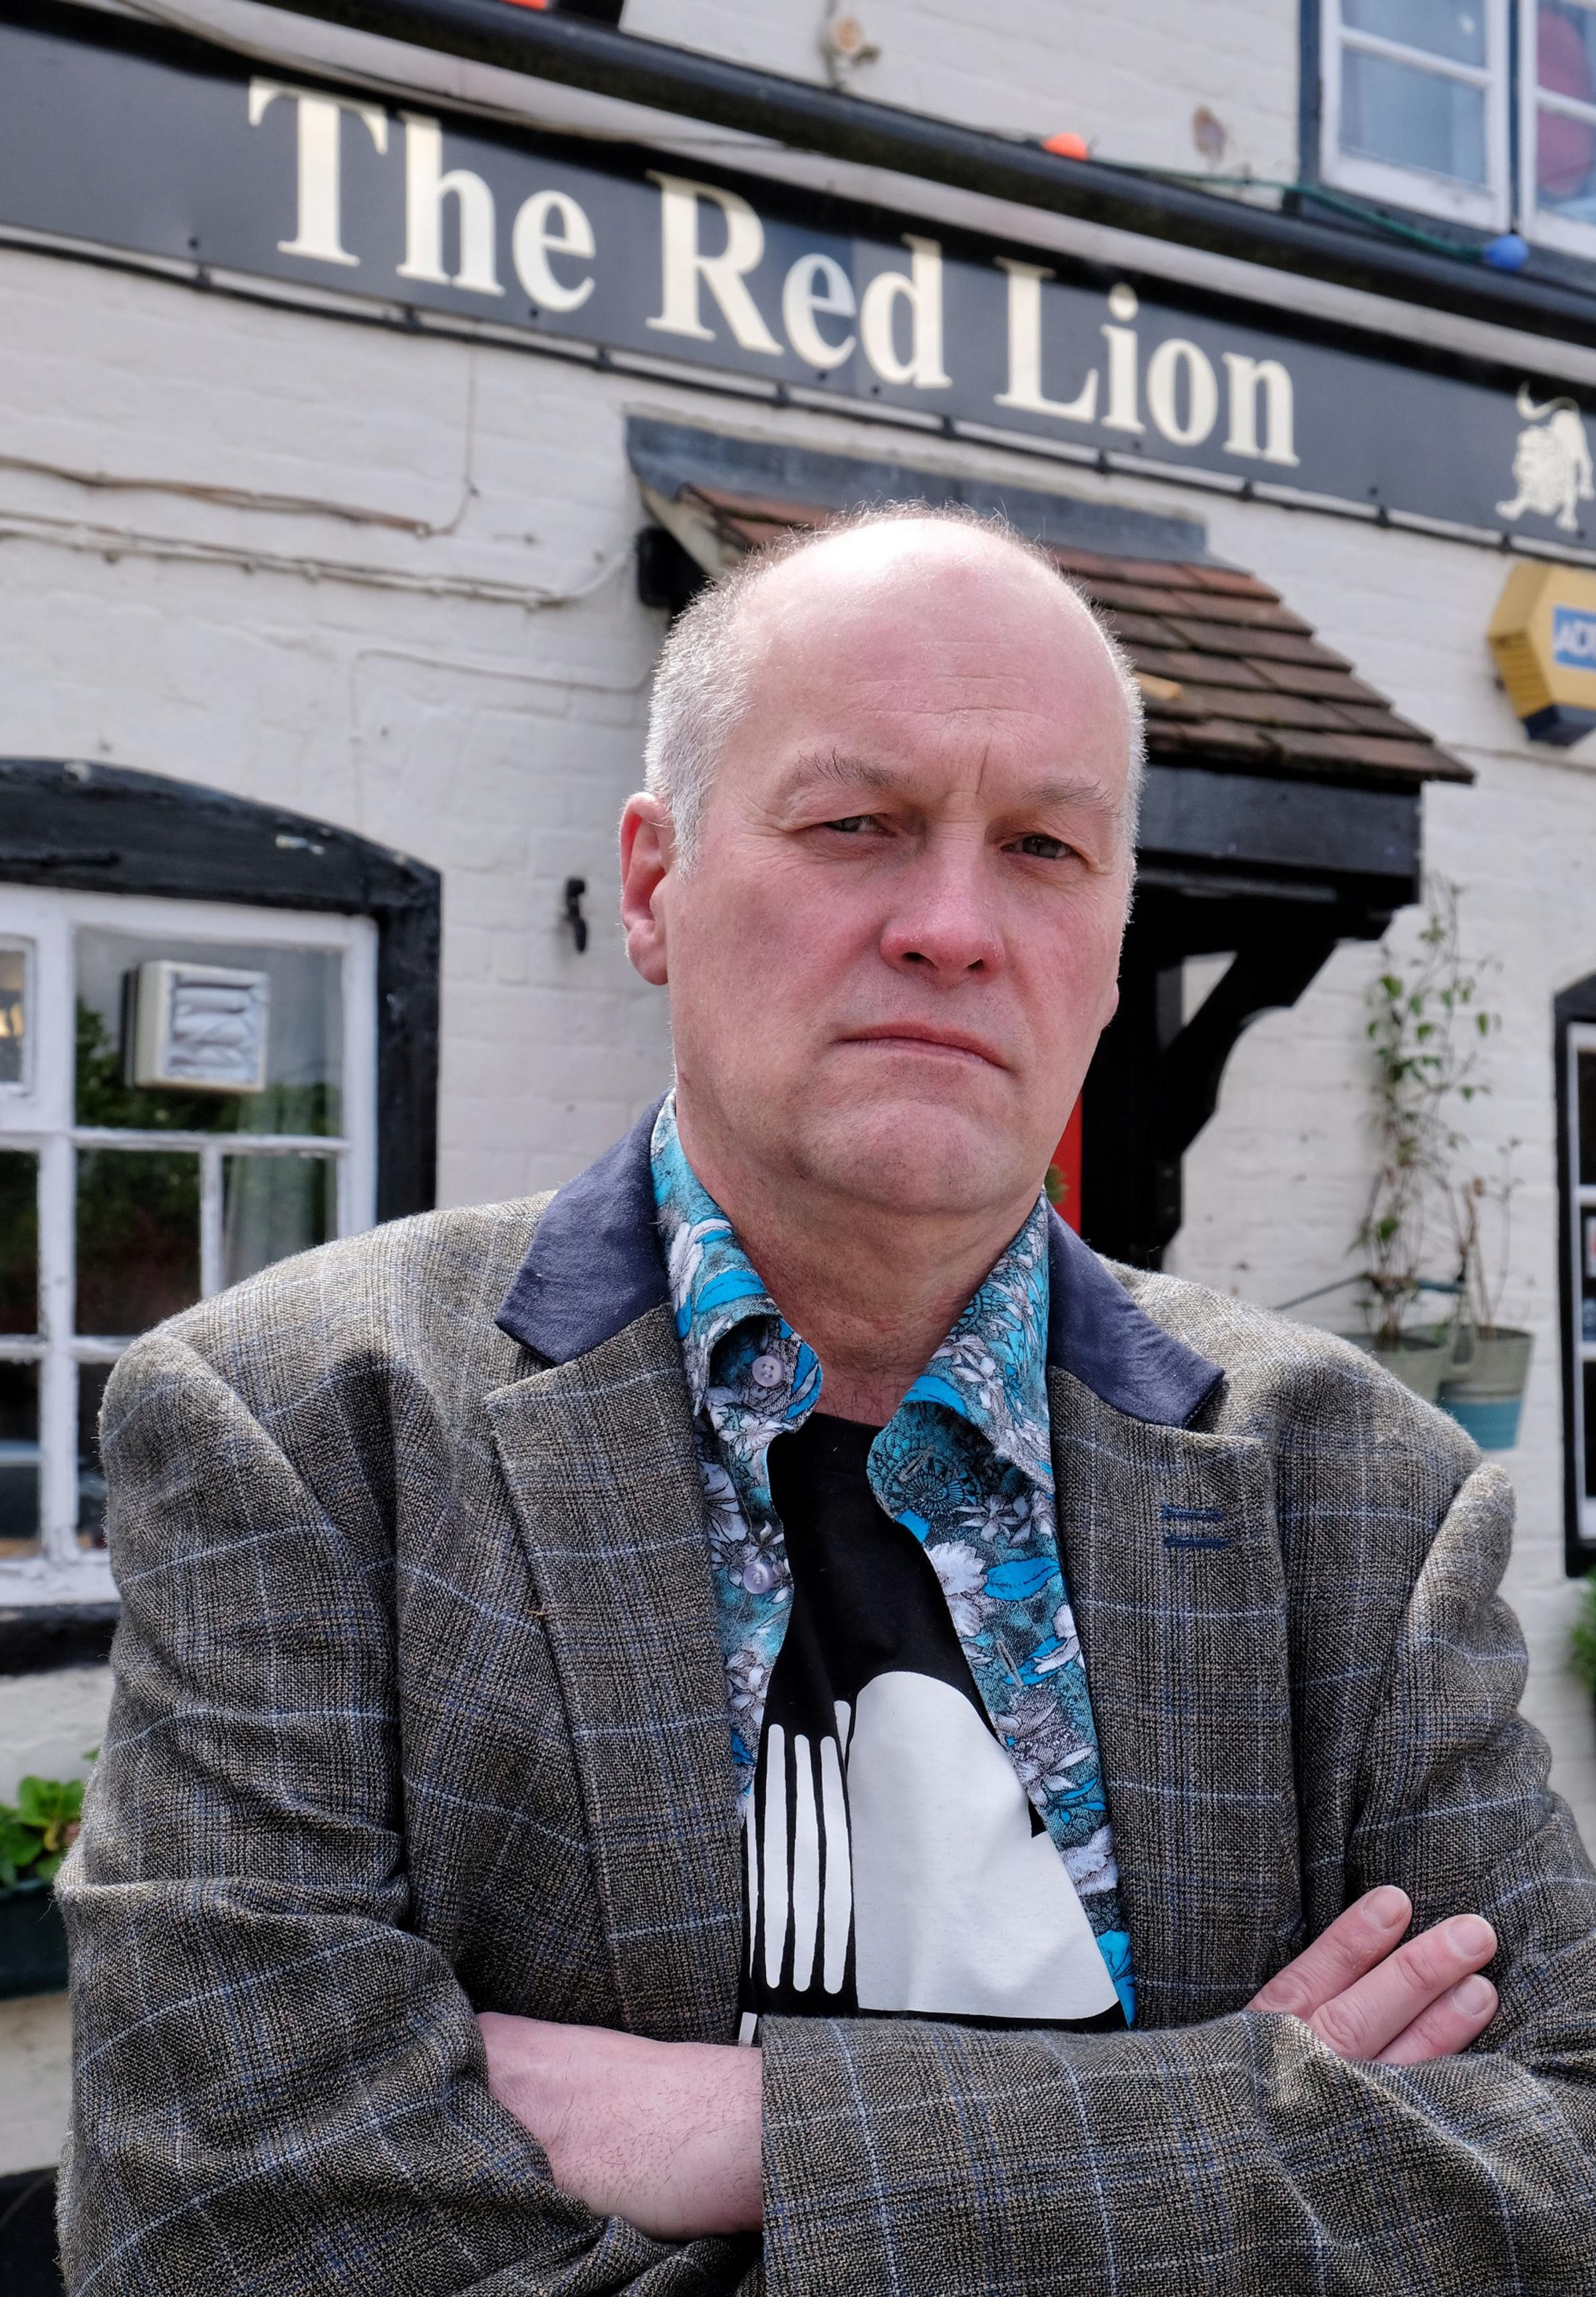 Former Red Lion landlord Marc Hunter who was given just 10 days notice to quit